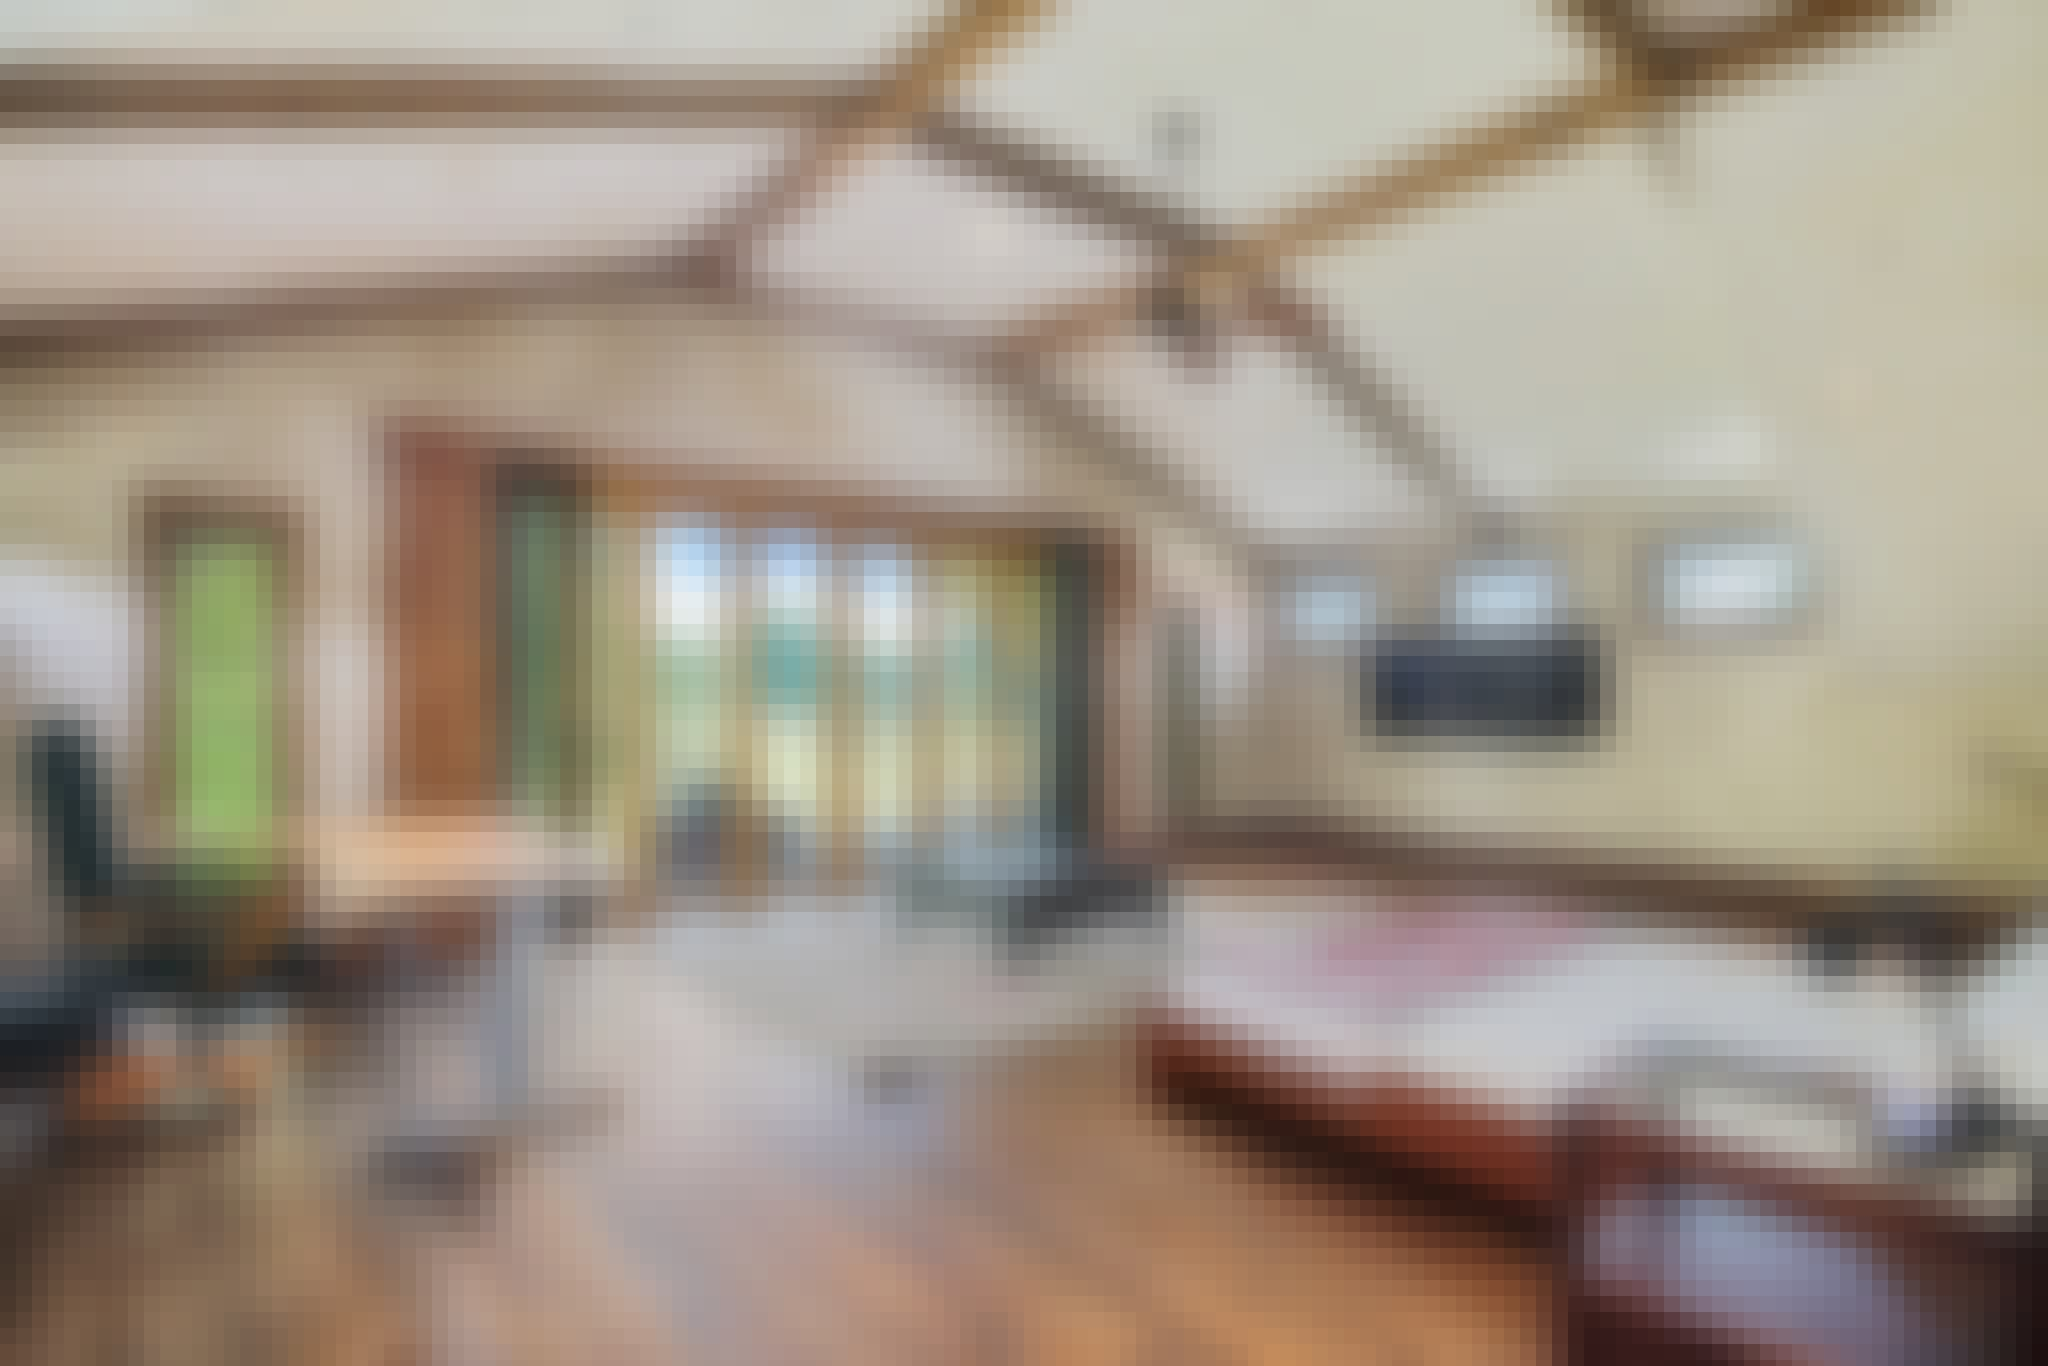 wood framed exterior glass wall systems in bedrooms